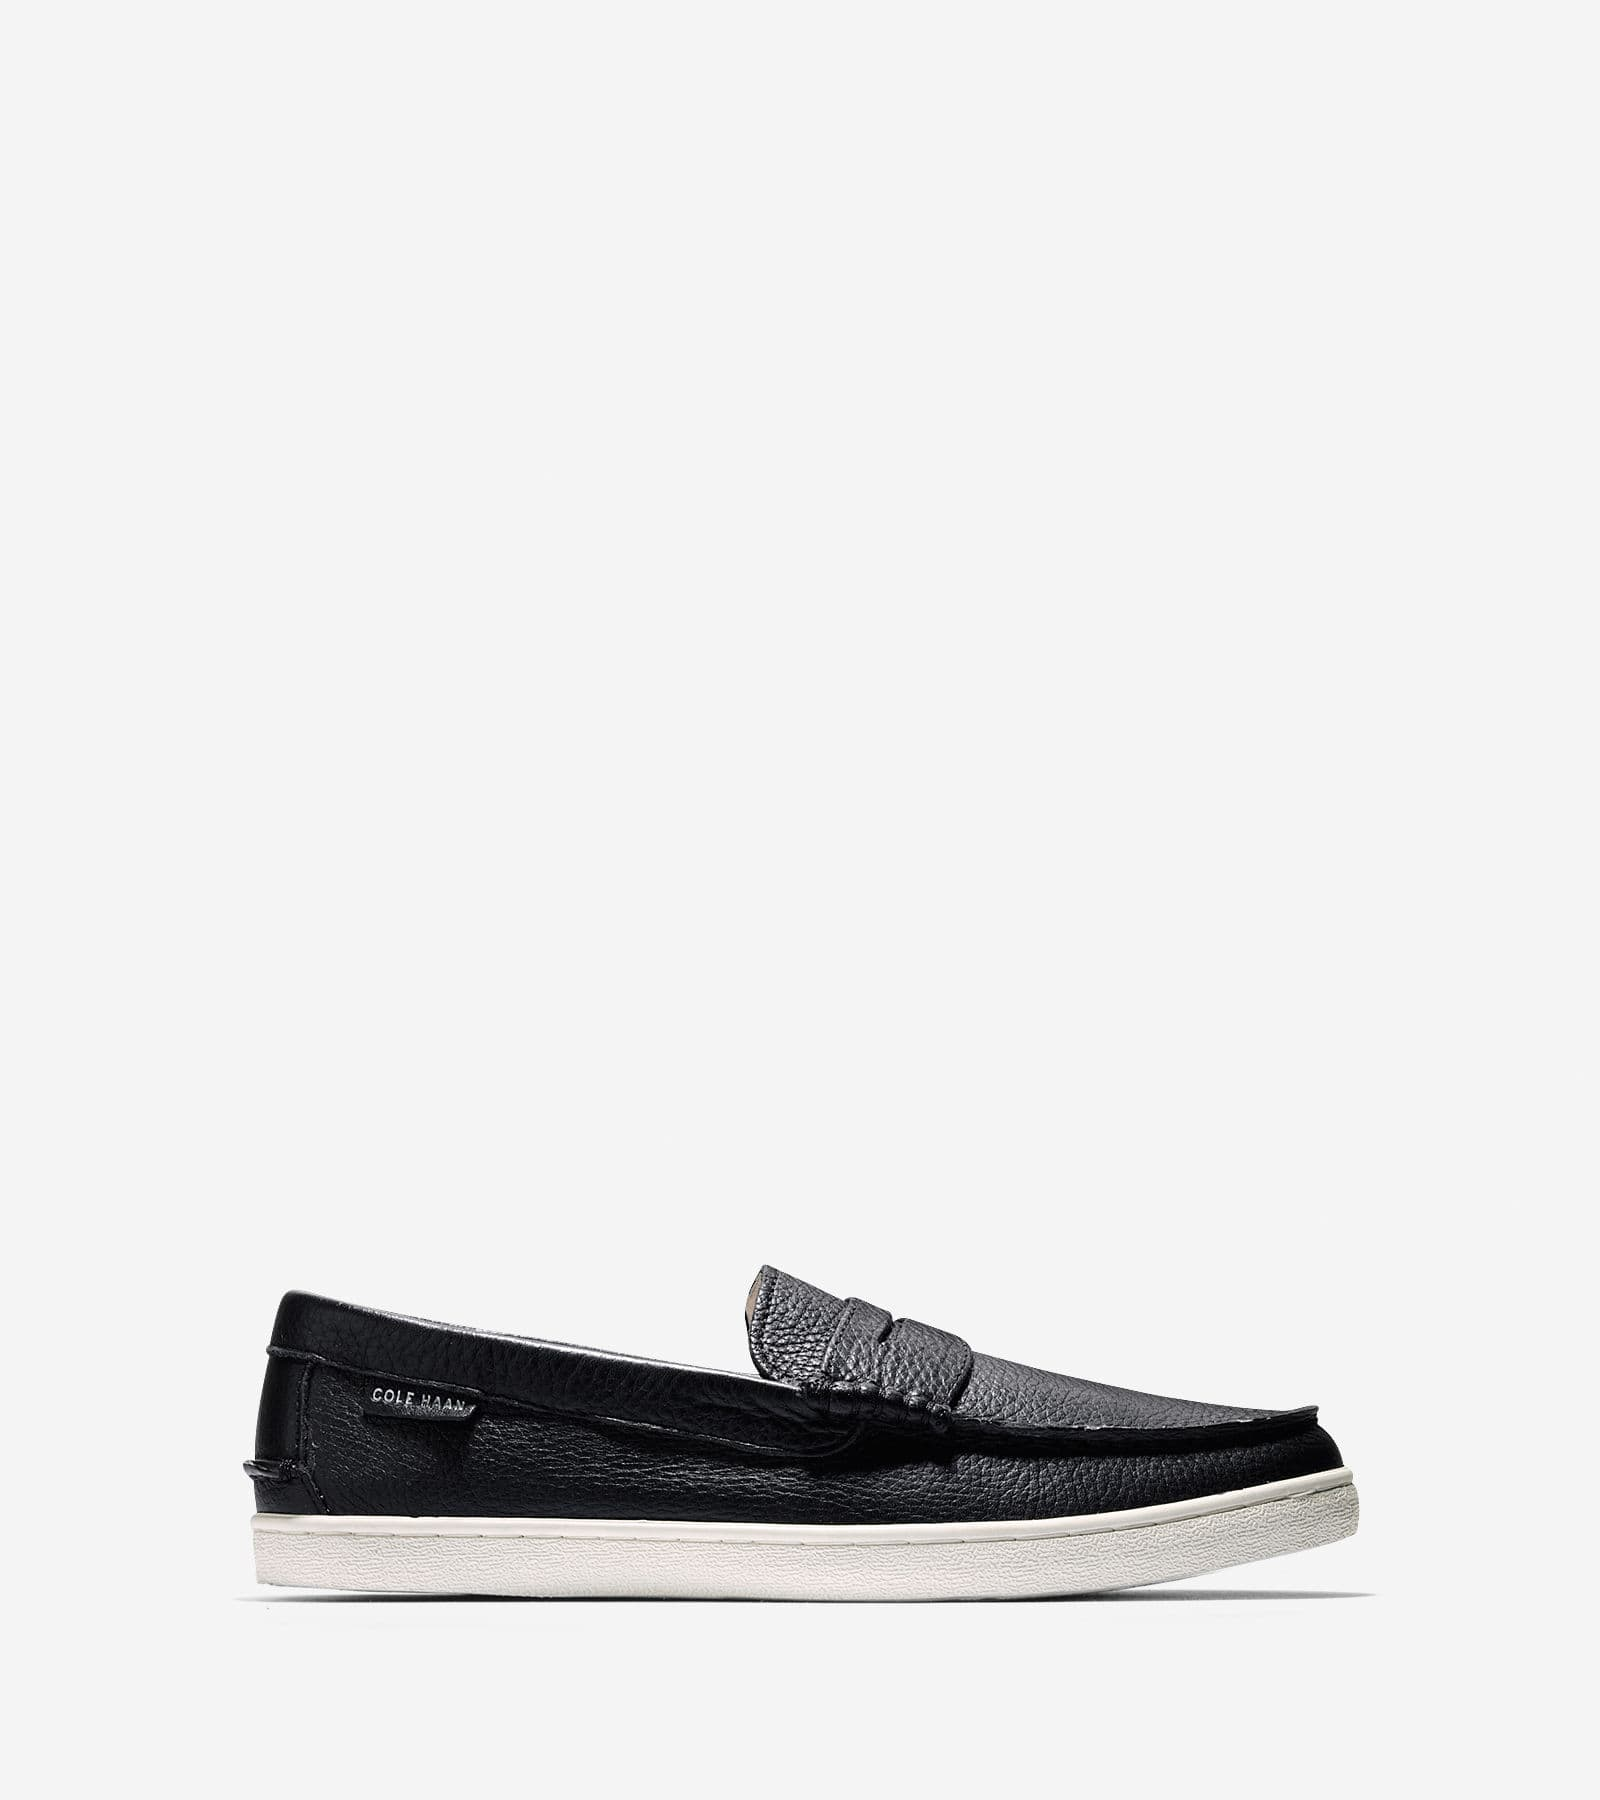 Cole haan extra 40% off sale, FS with Shop runner or over $150